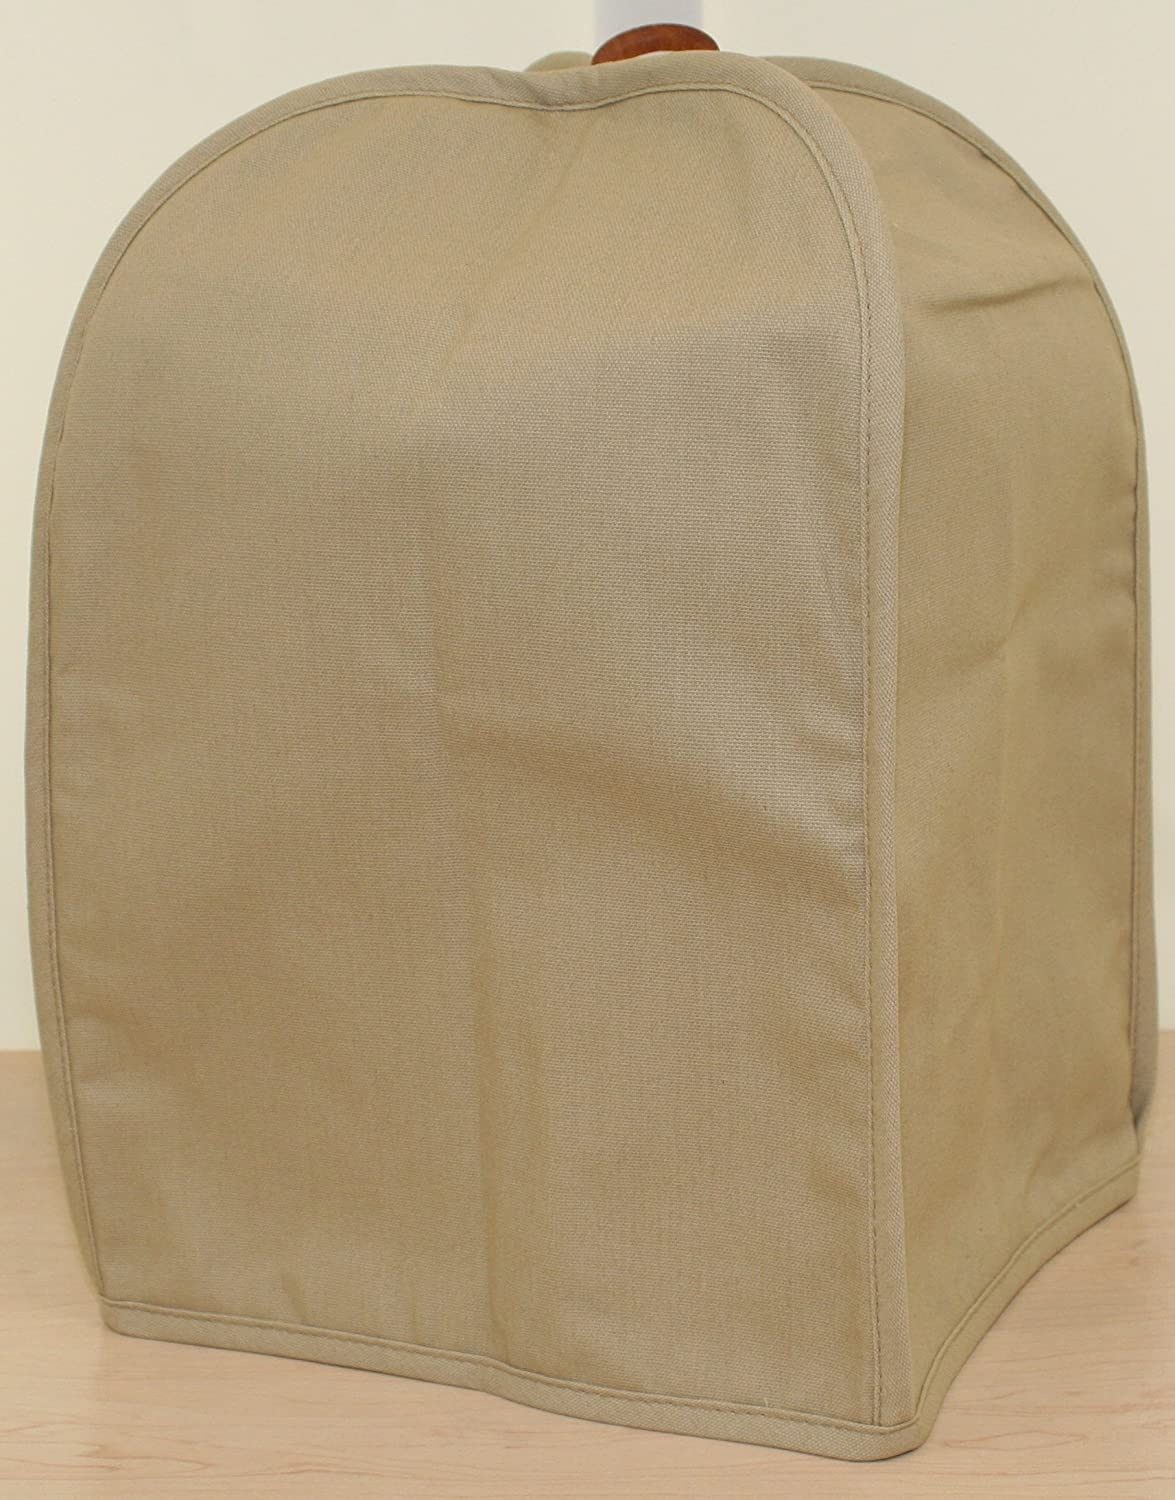 The Curtain Shop America at Home Mixer/Coffee Maker Cover Tan